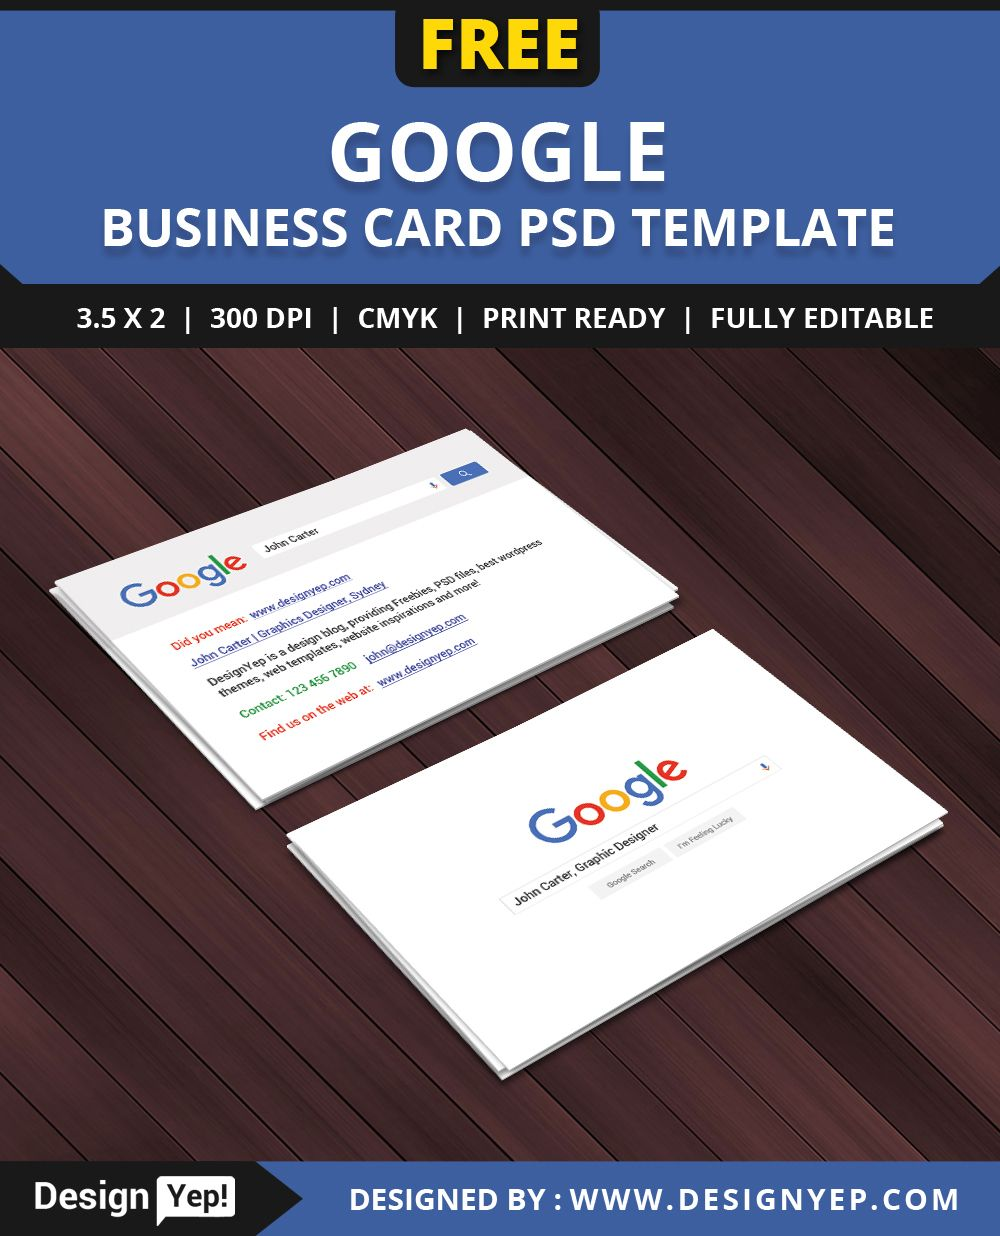 Free Google Interface Business Card Psd Template On Behance Intended For Google Search Business Ca Doctor Business Cards Google Business Card Business Card Psd